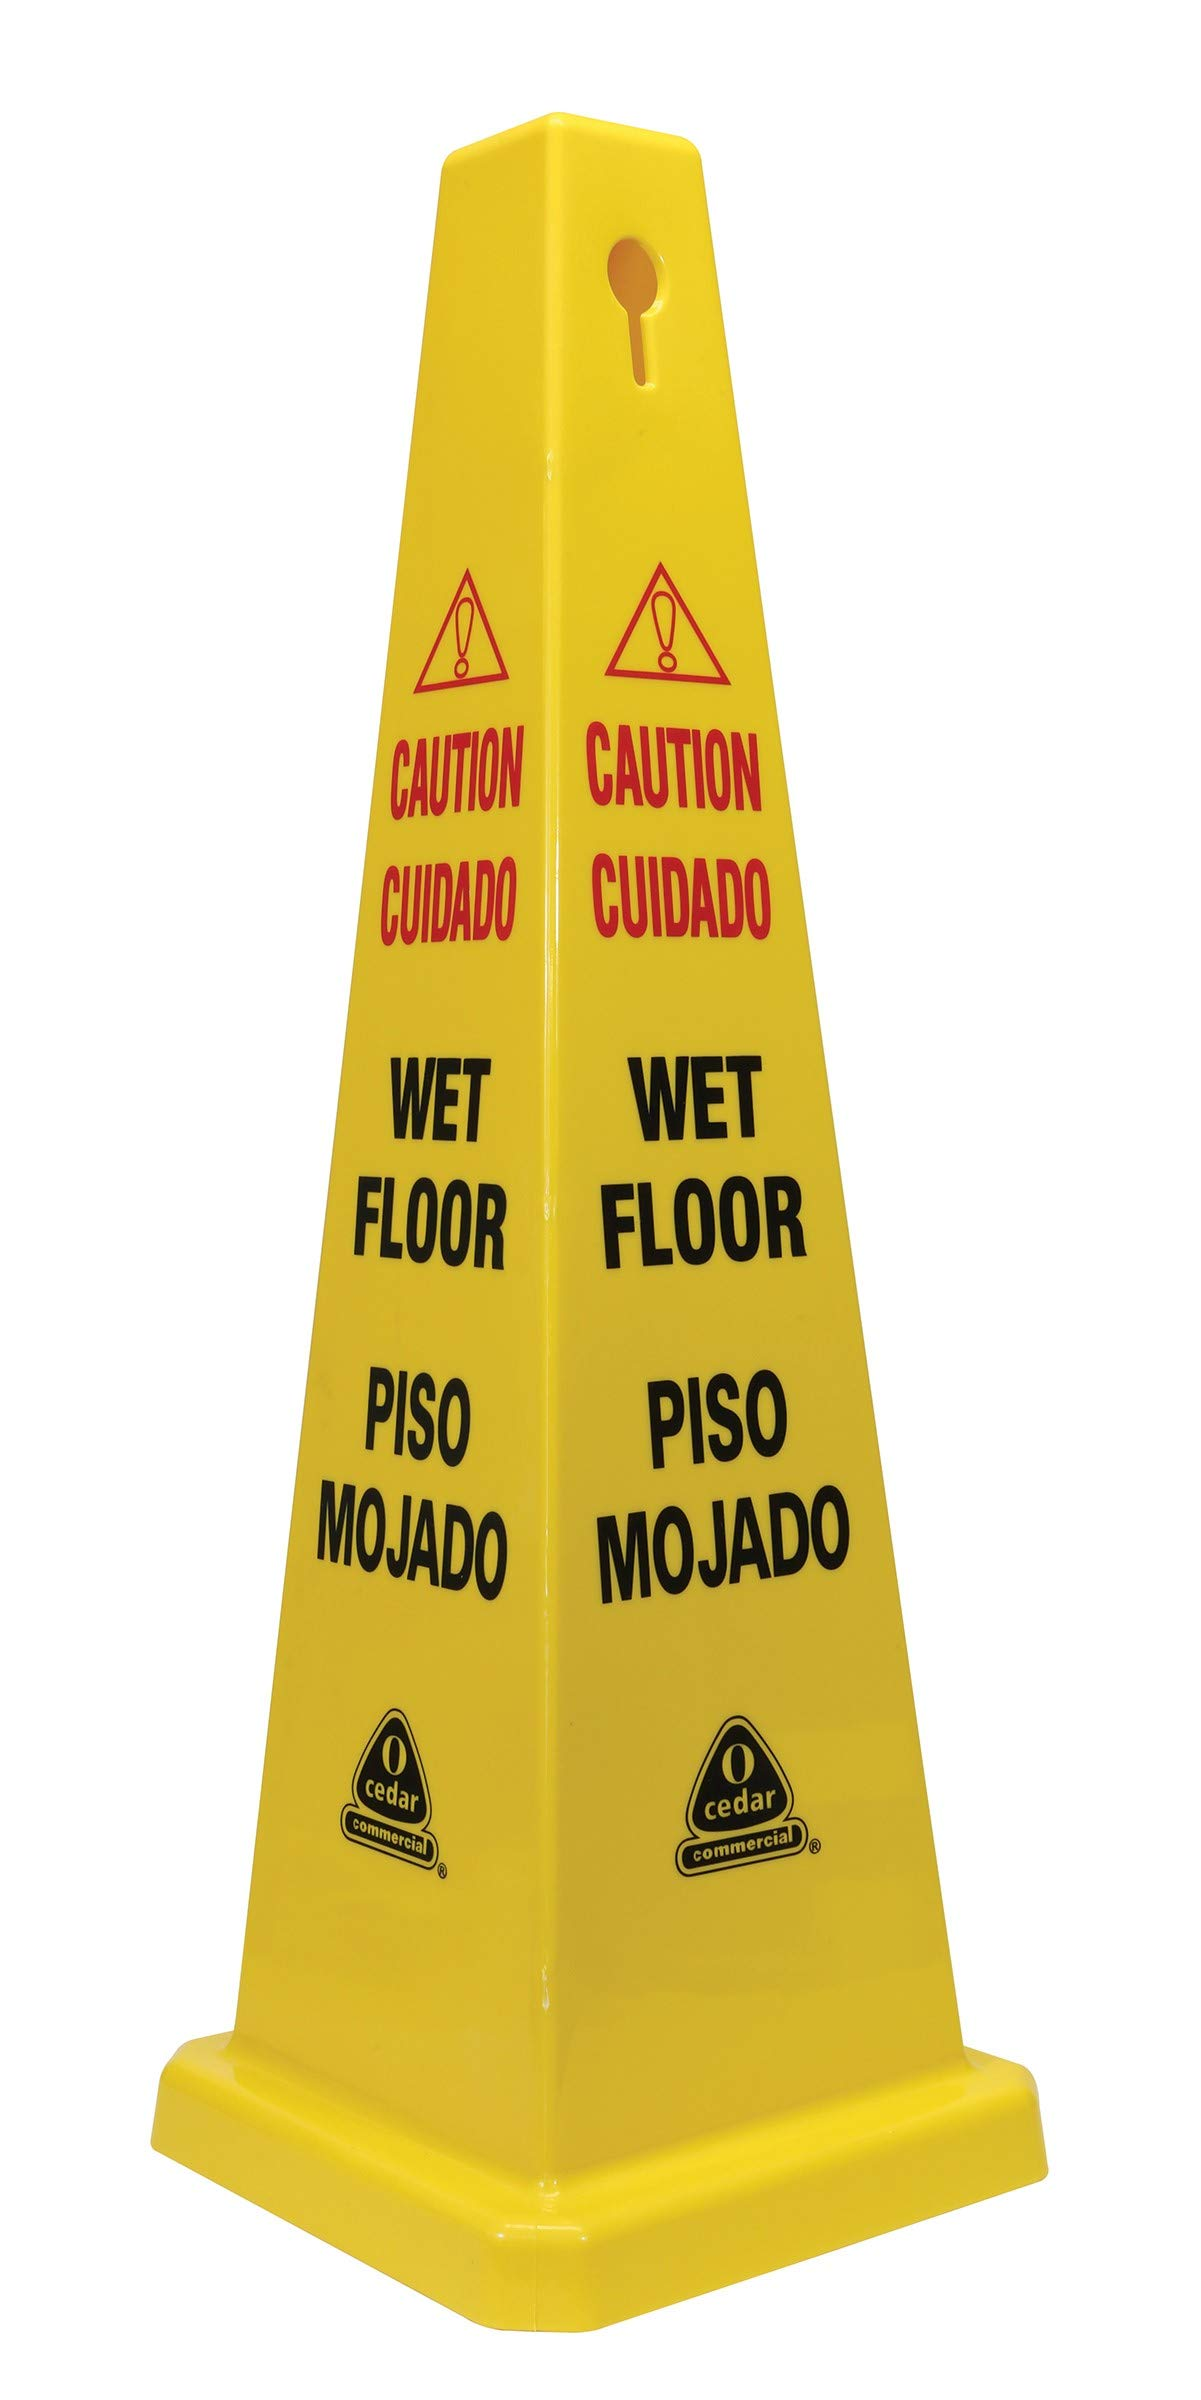 Oceeh|#O'cedar Commercial 96993 4-Sided Floor Safety Cone, (Pack of 6)